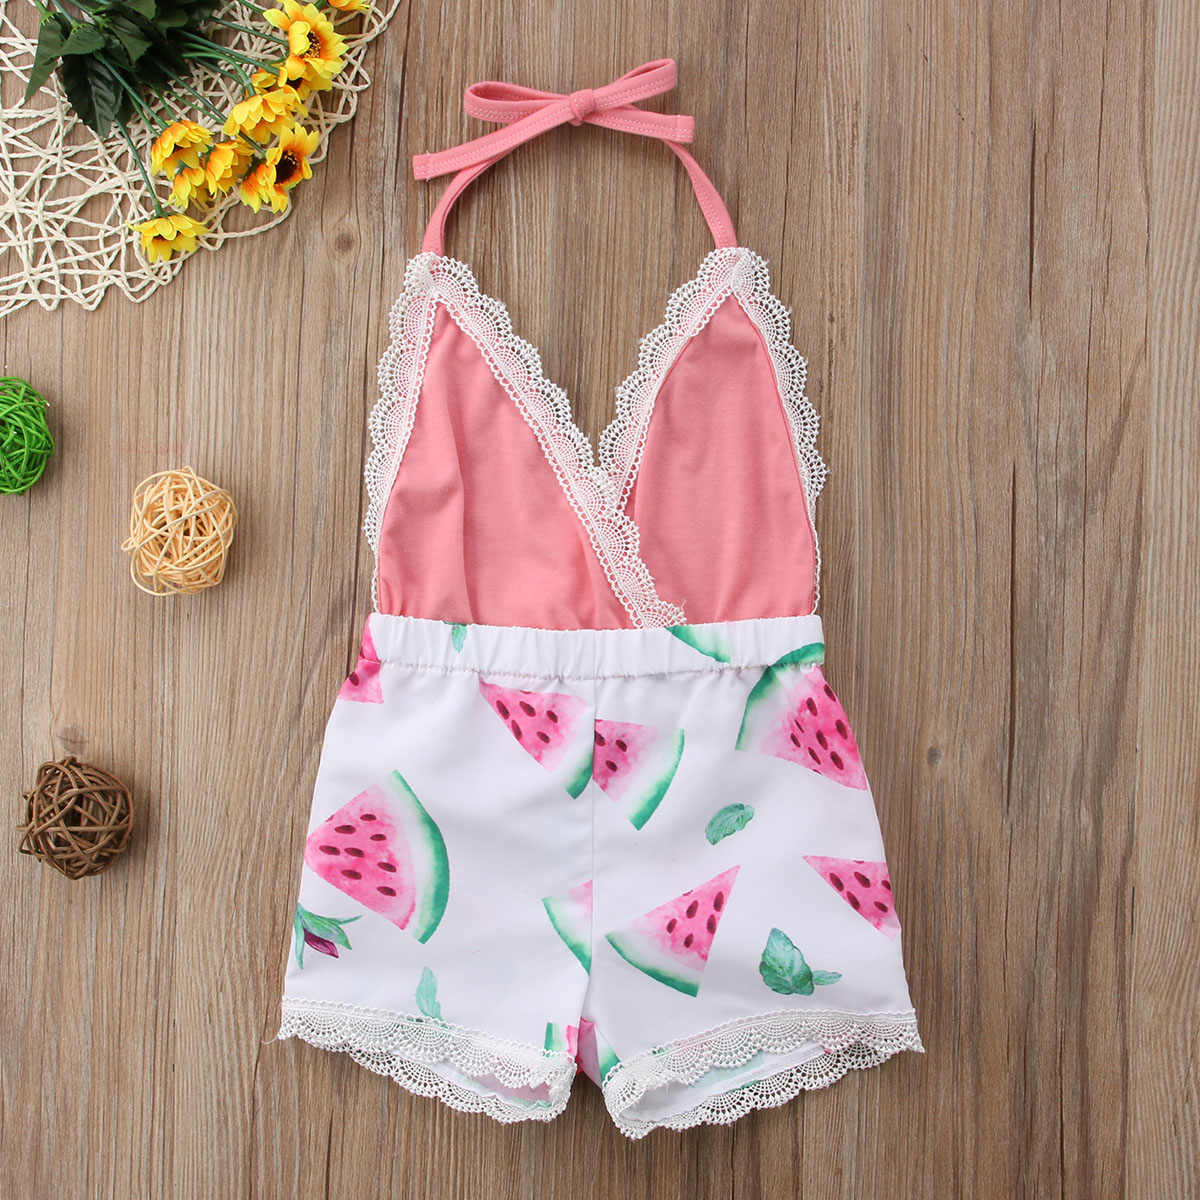 6b3d8c4de52d ... 2018 Newborn Toddler Kids Baby Girl Romper Neck Sunflower Watermelon Jumpsuit  Outfits Sunsuit Cute Summer Clothes ...